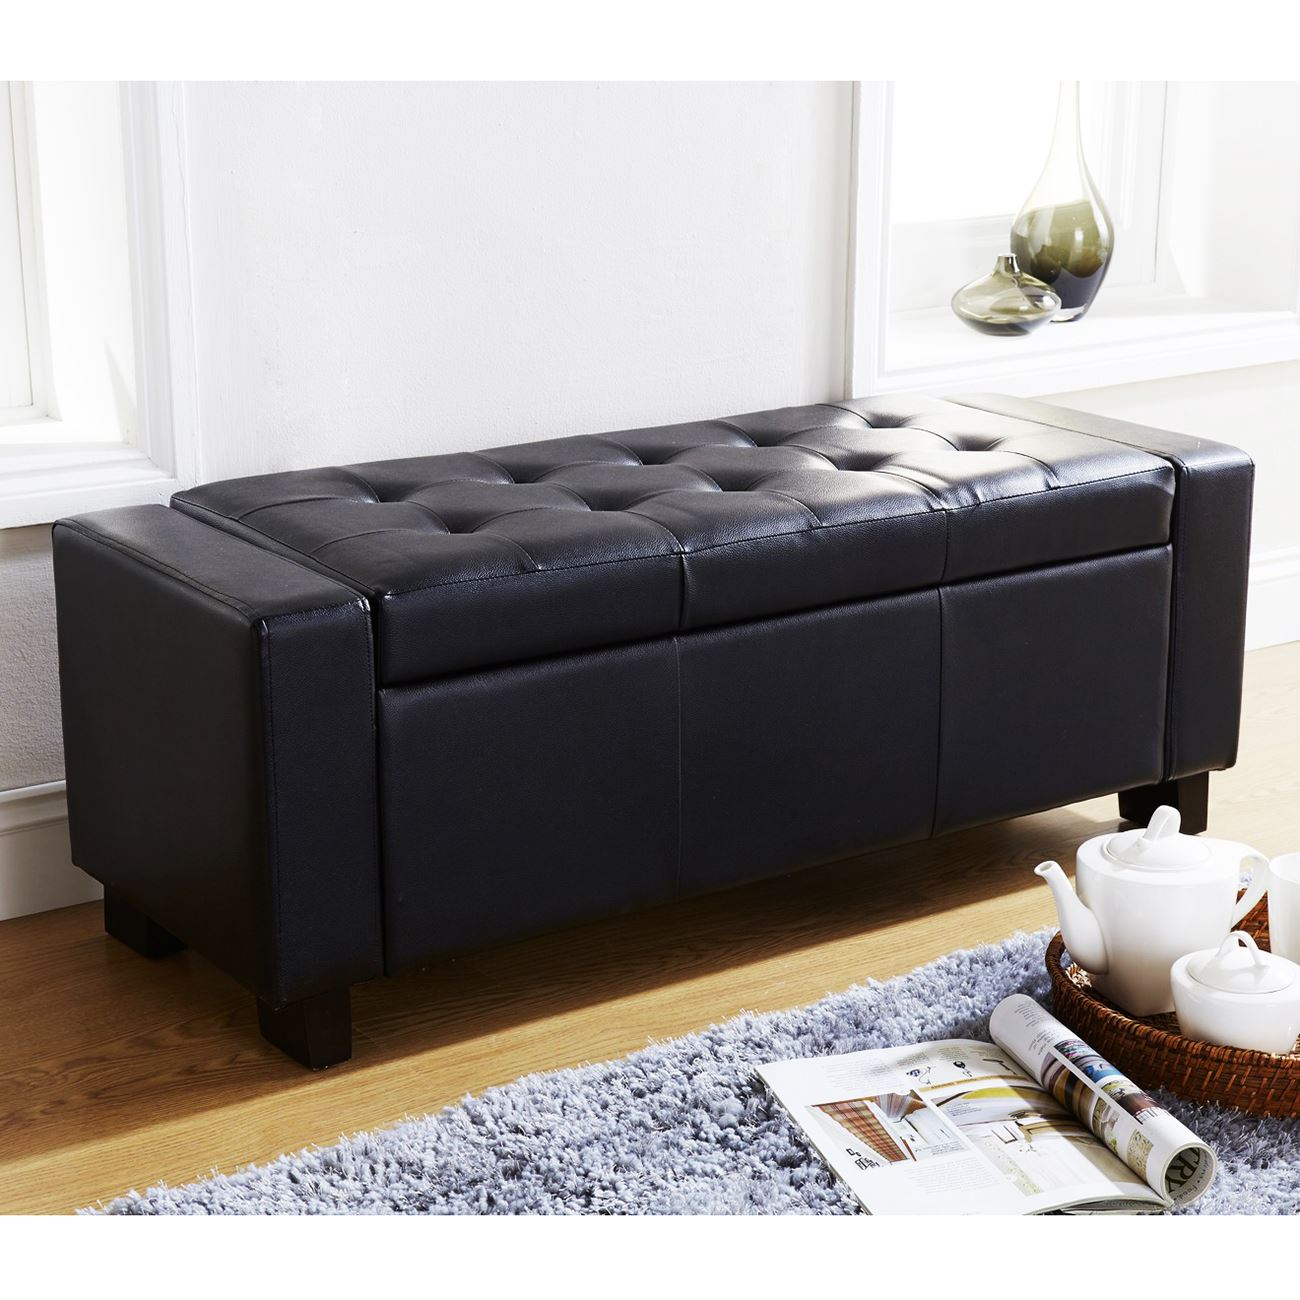 Item specifics  sc 1 st  eBay & VERONA OTTOMAN BLANKET BOX STORAGE BENCH FAUX LEATHER FOOT STOOL ...